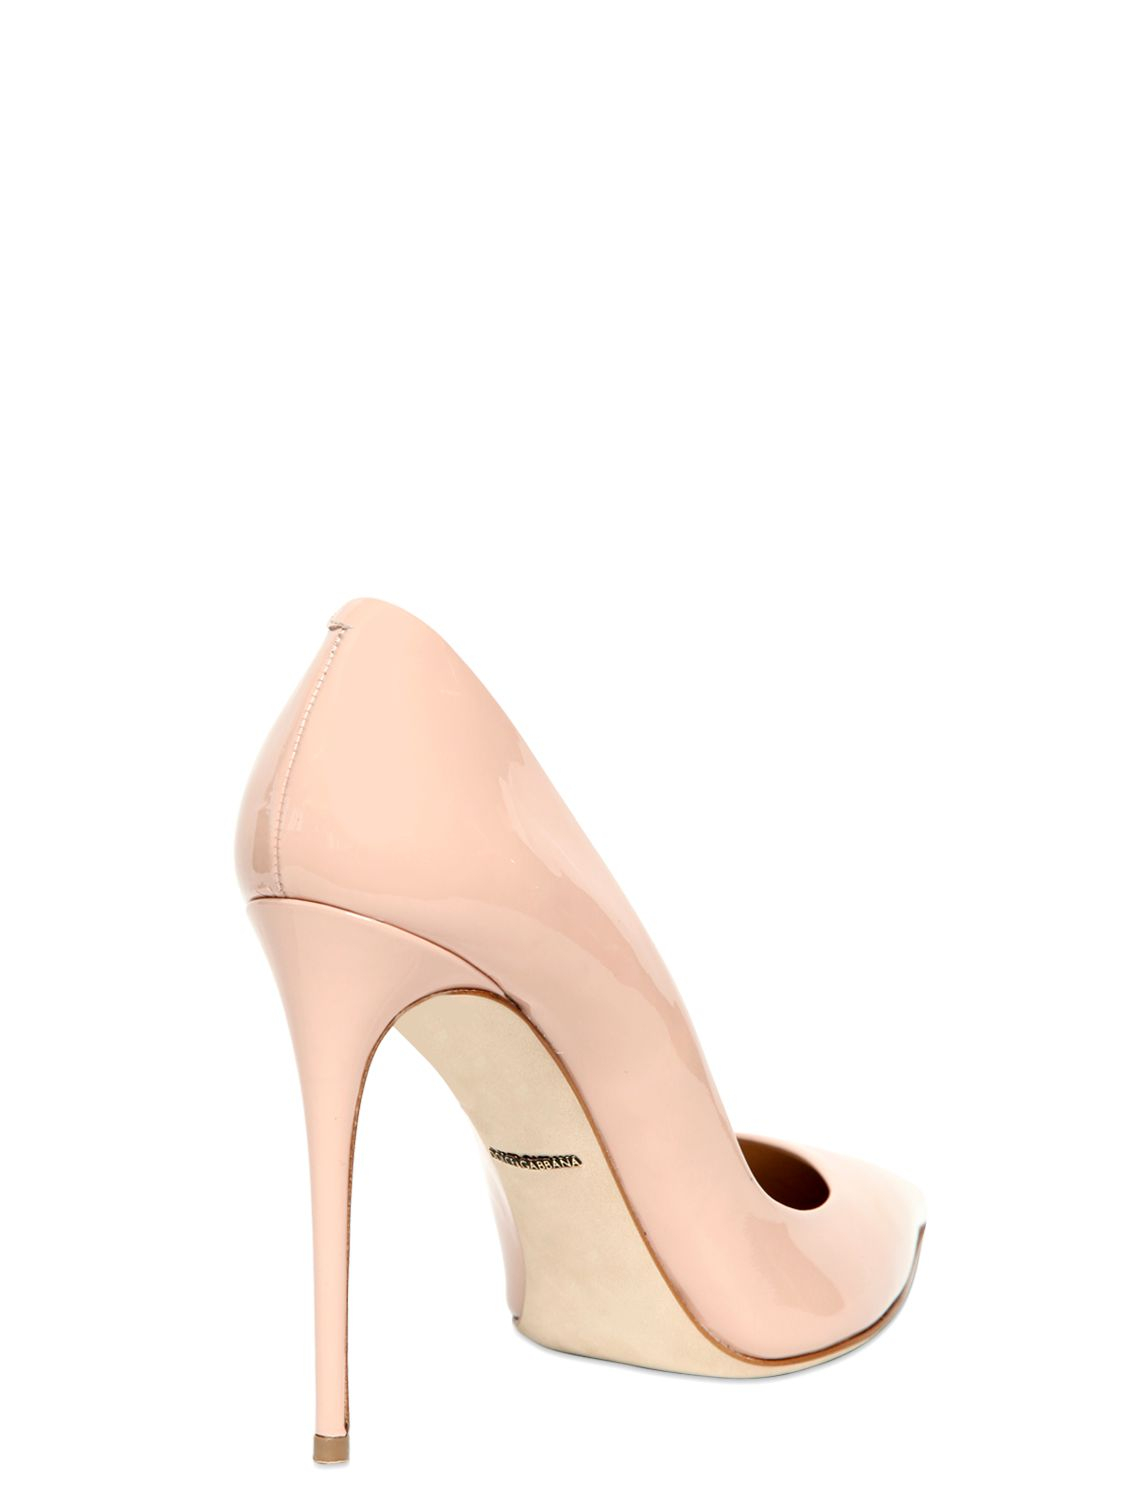 cb294fed079c Dolce   Gabbana 105mm Kate Patent Leather Pumps in Pink - Lyst